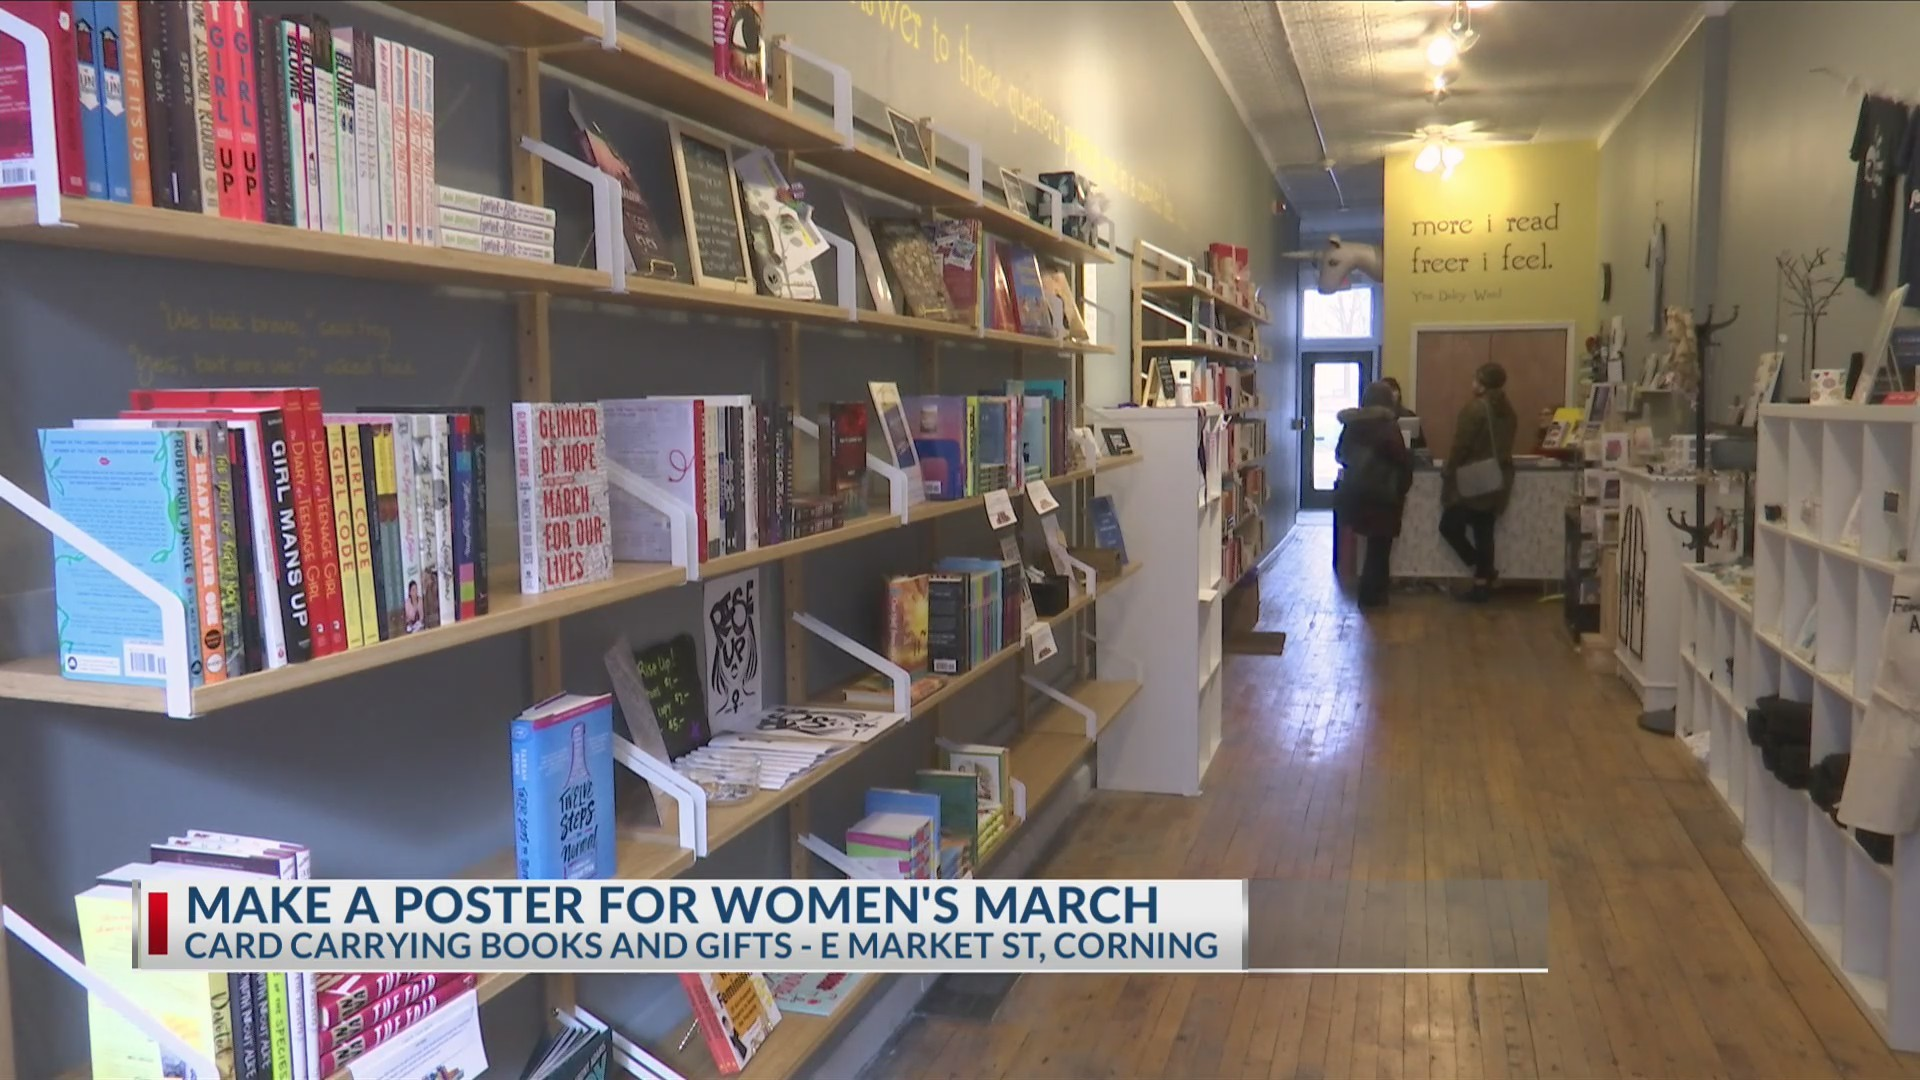 Elmira_Women_s_March_poster_making_event_0_20190116224929